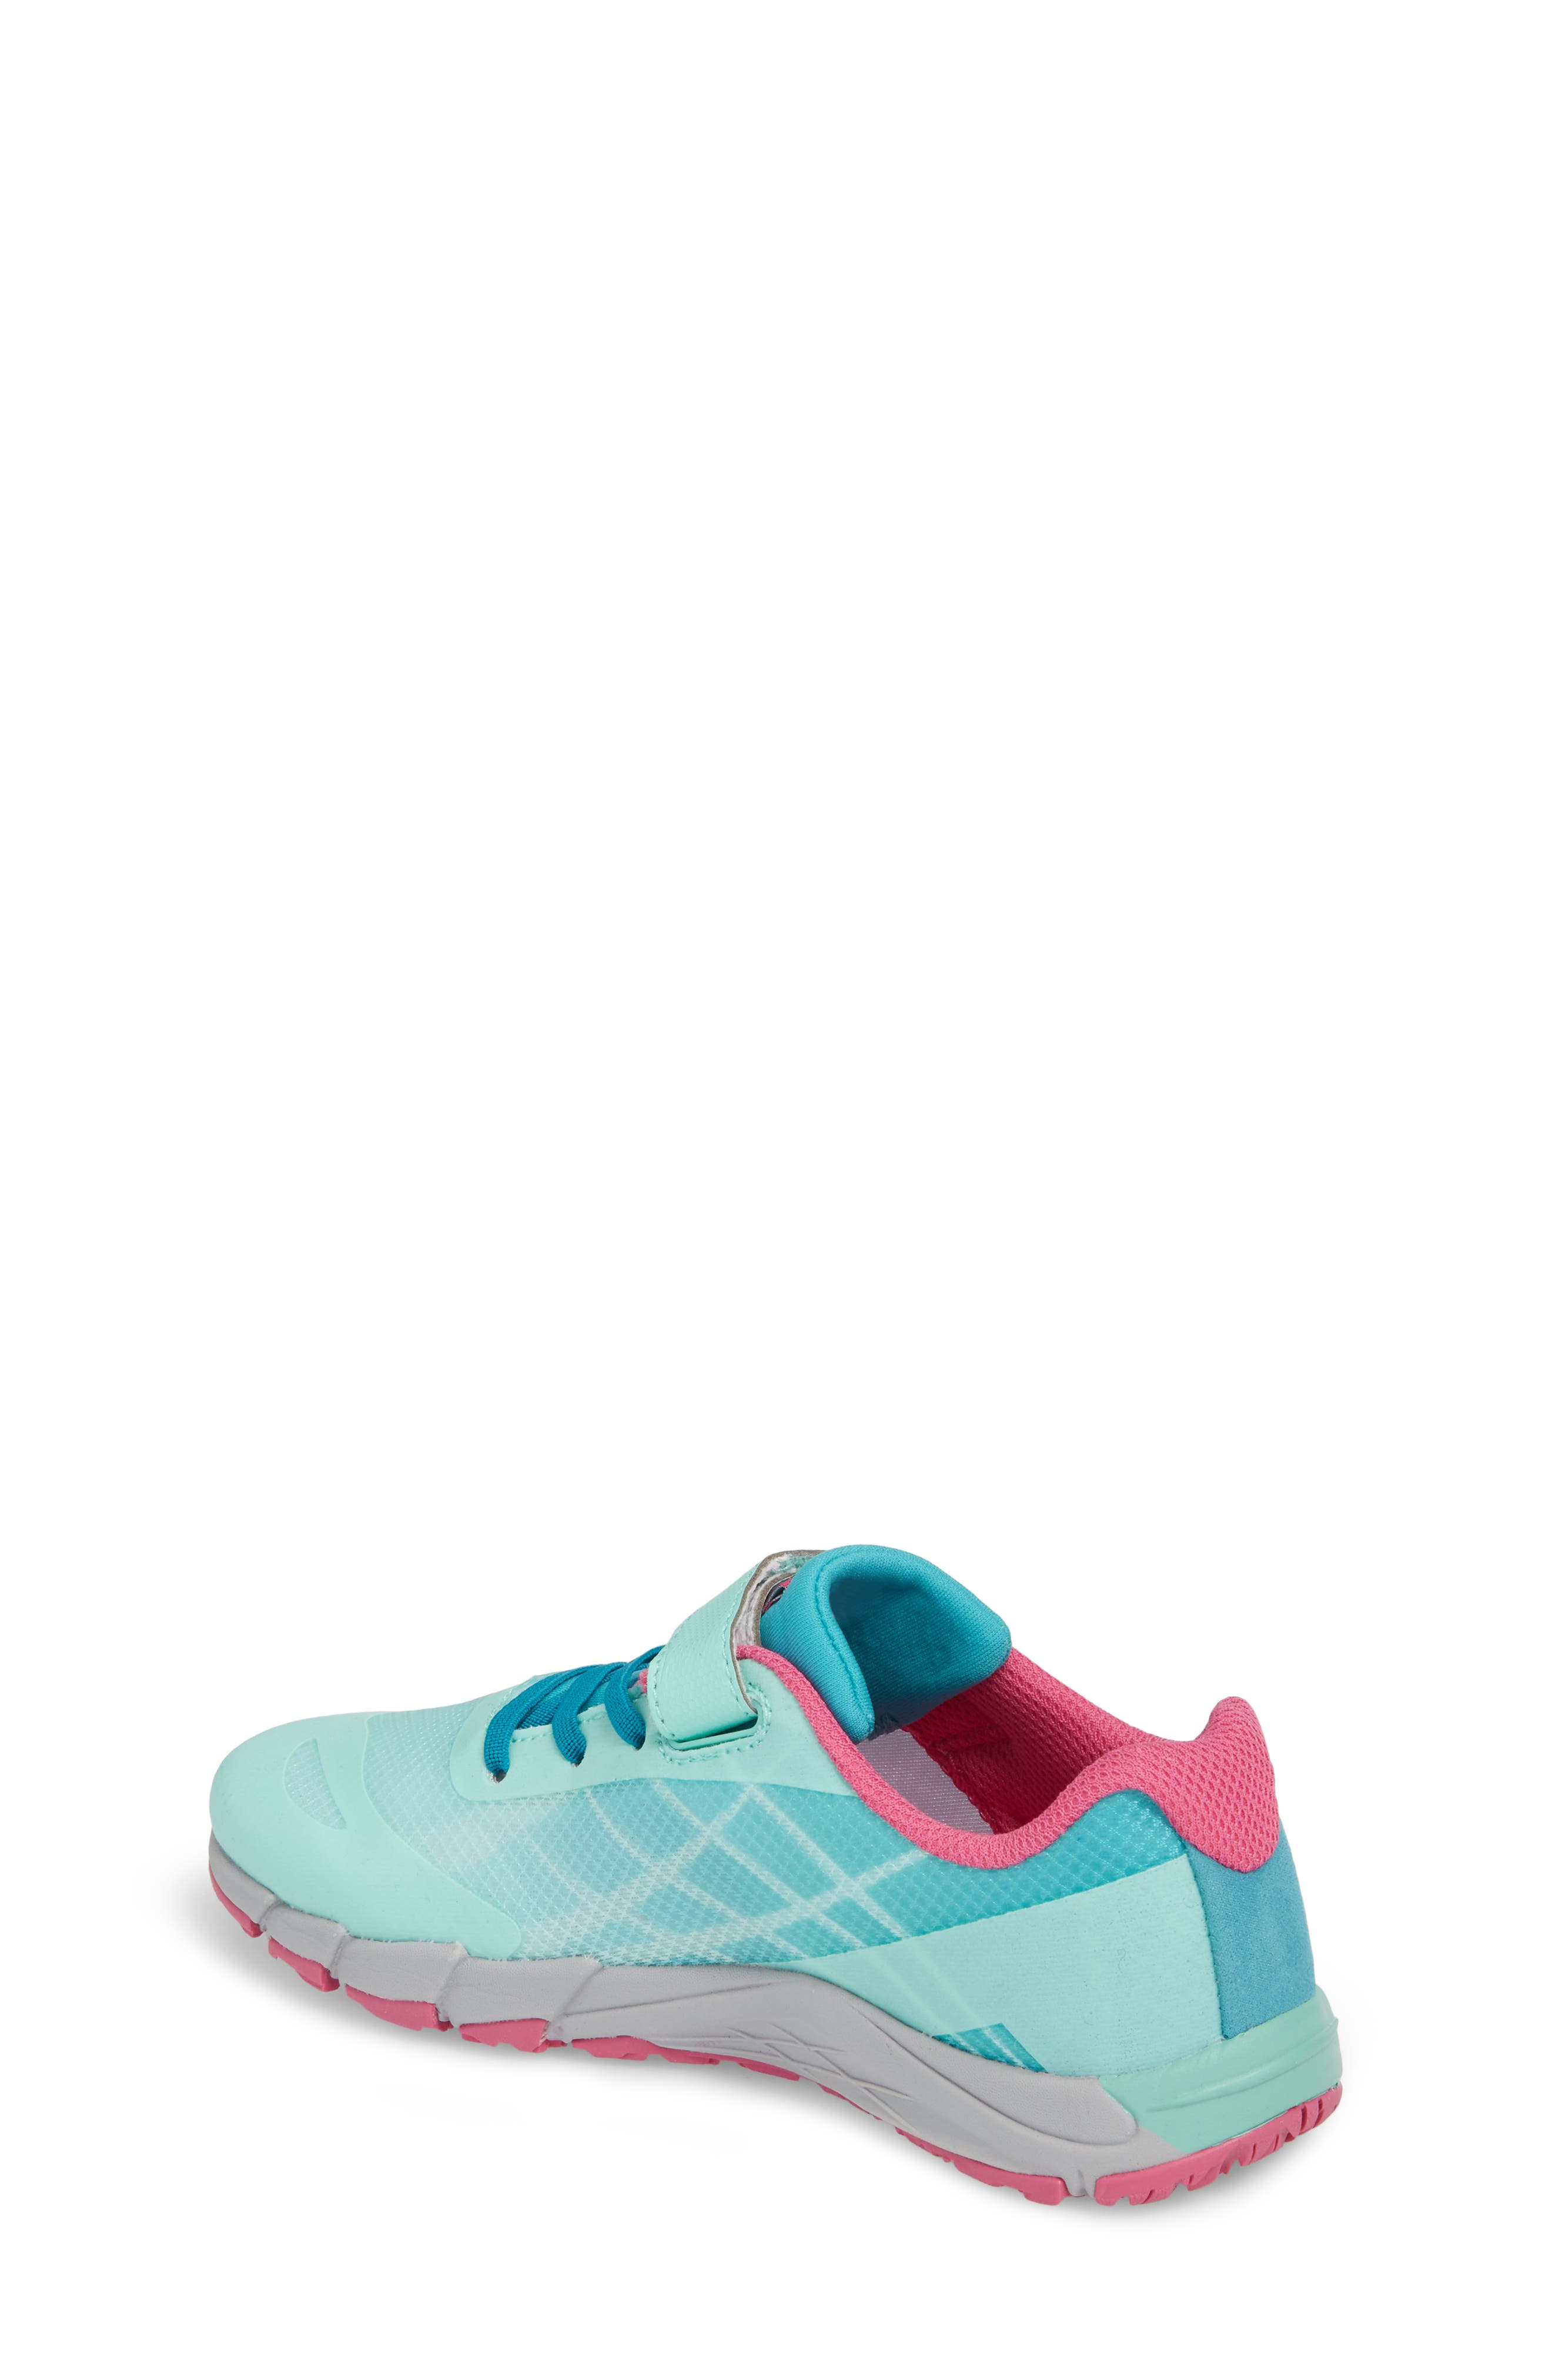 Bare Access Sneaker,                             Alternate thumbnail 2, color,                             Turquoise/ Berry